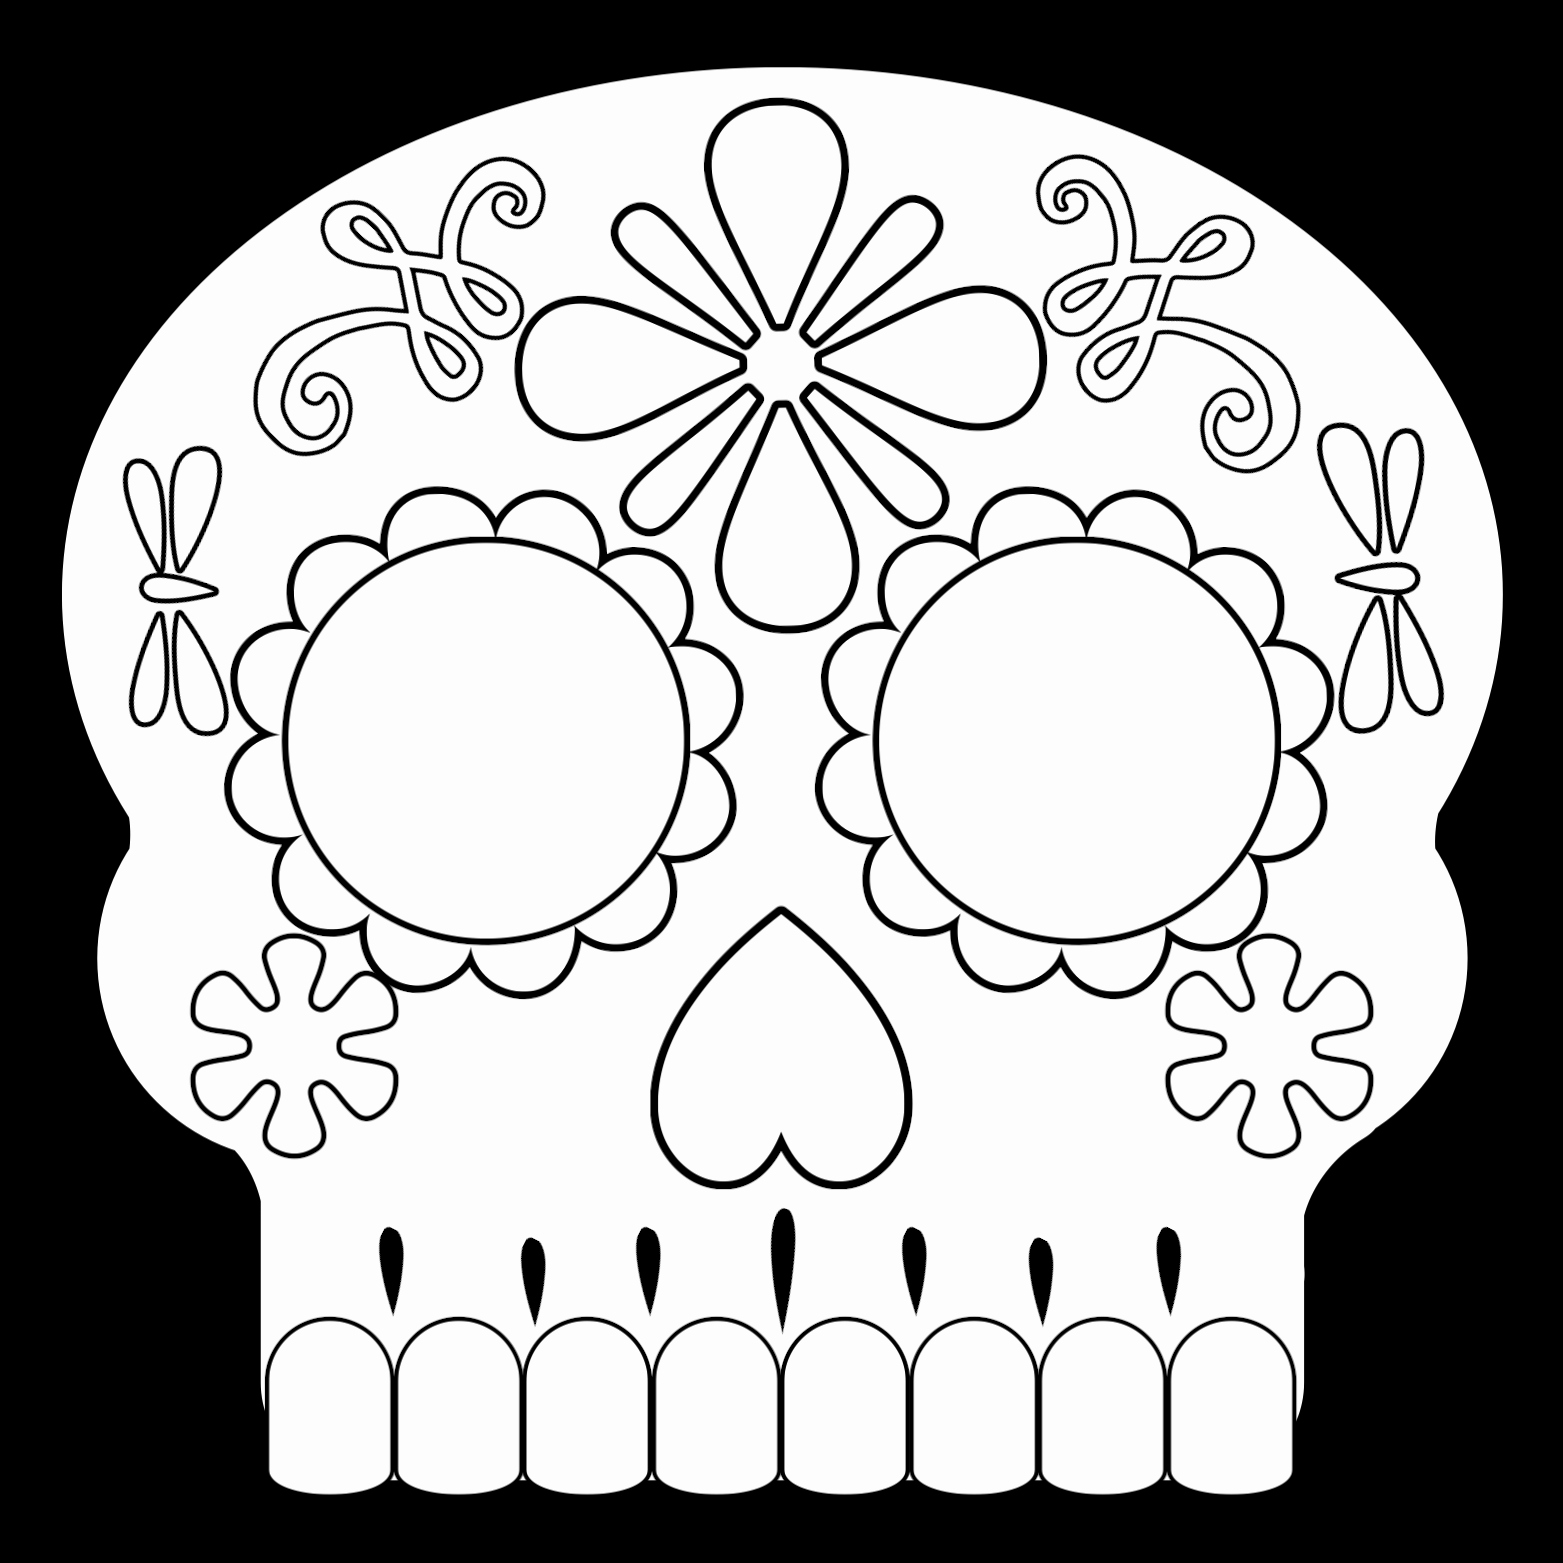 Sugar Skull Template Printable Lovely Day Of the Dead Masks Sugar Skulls Free Printable Paper